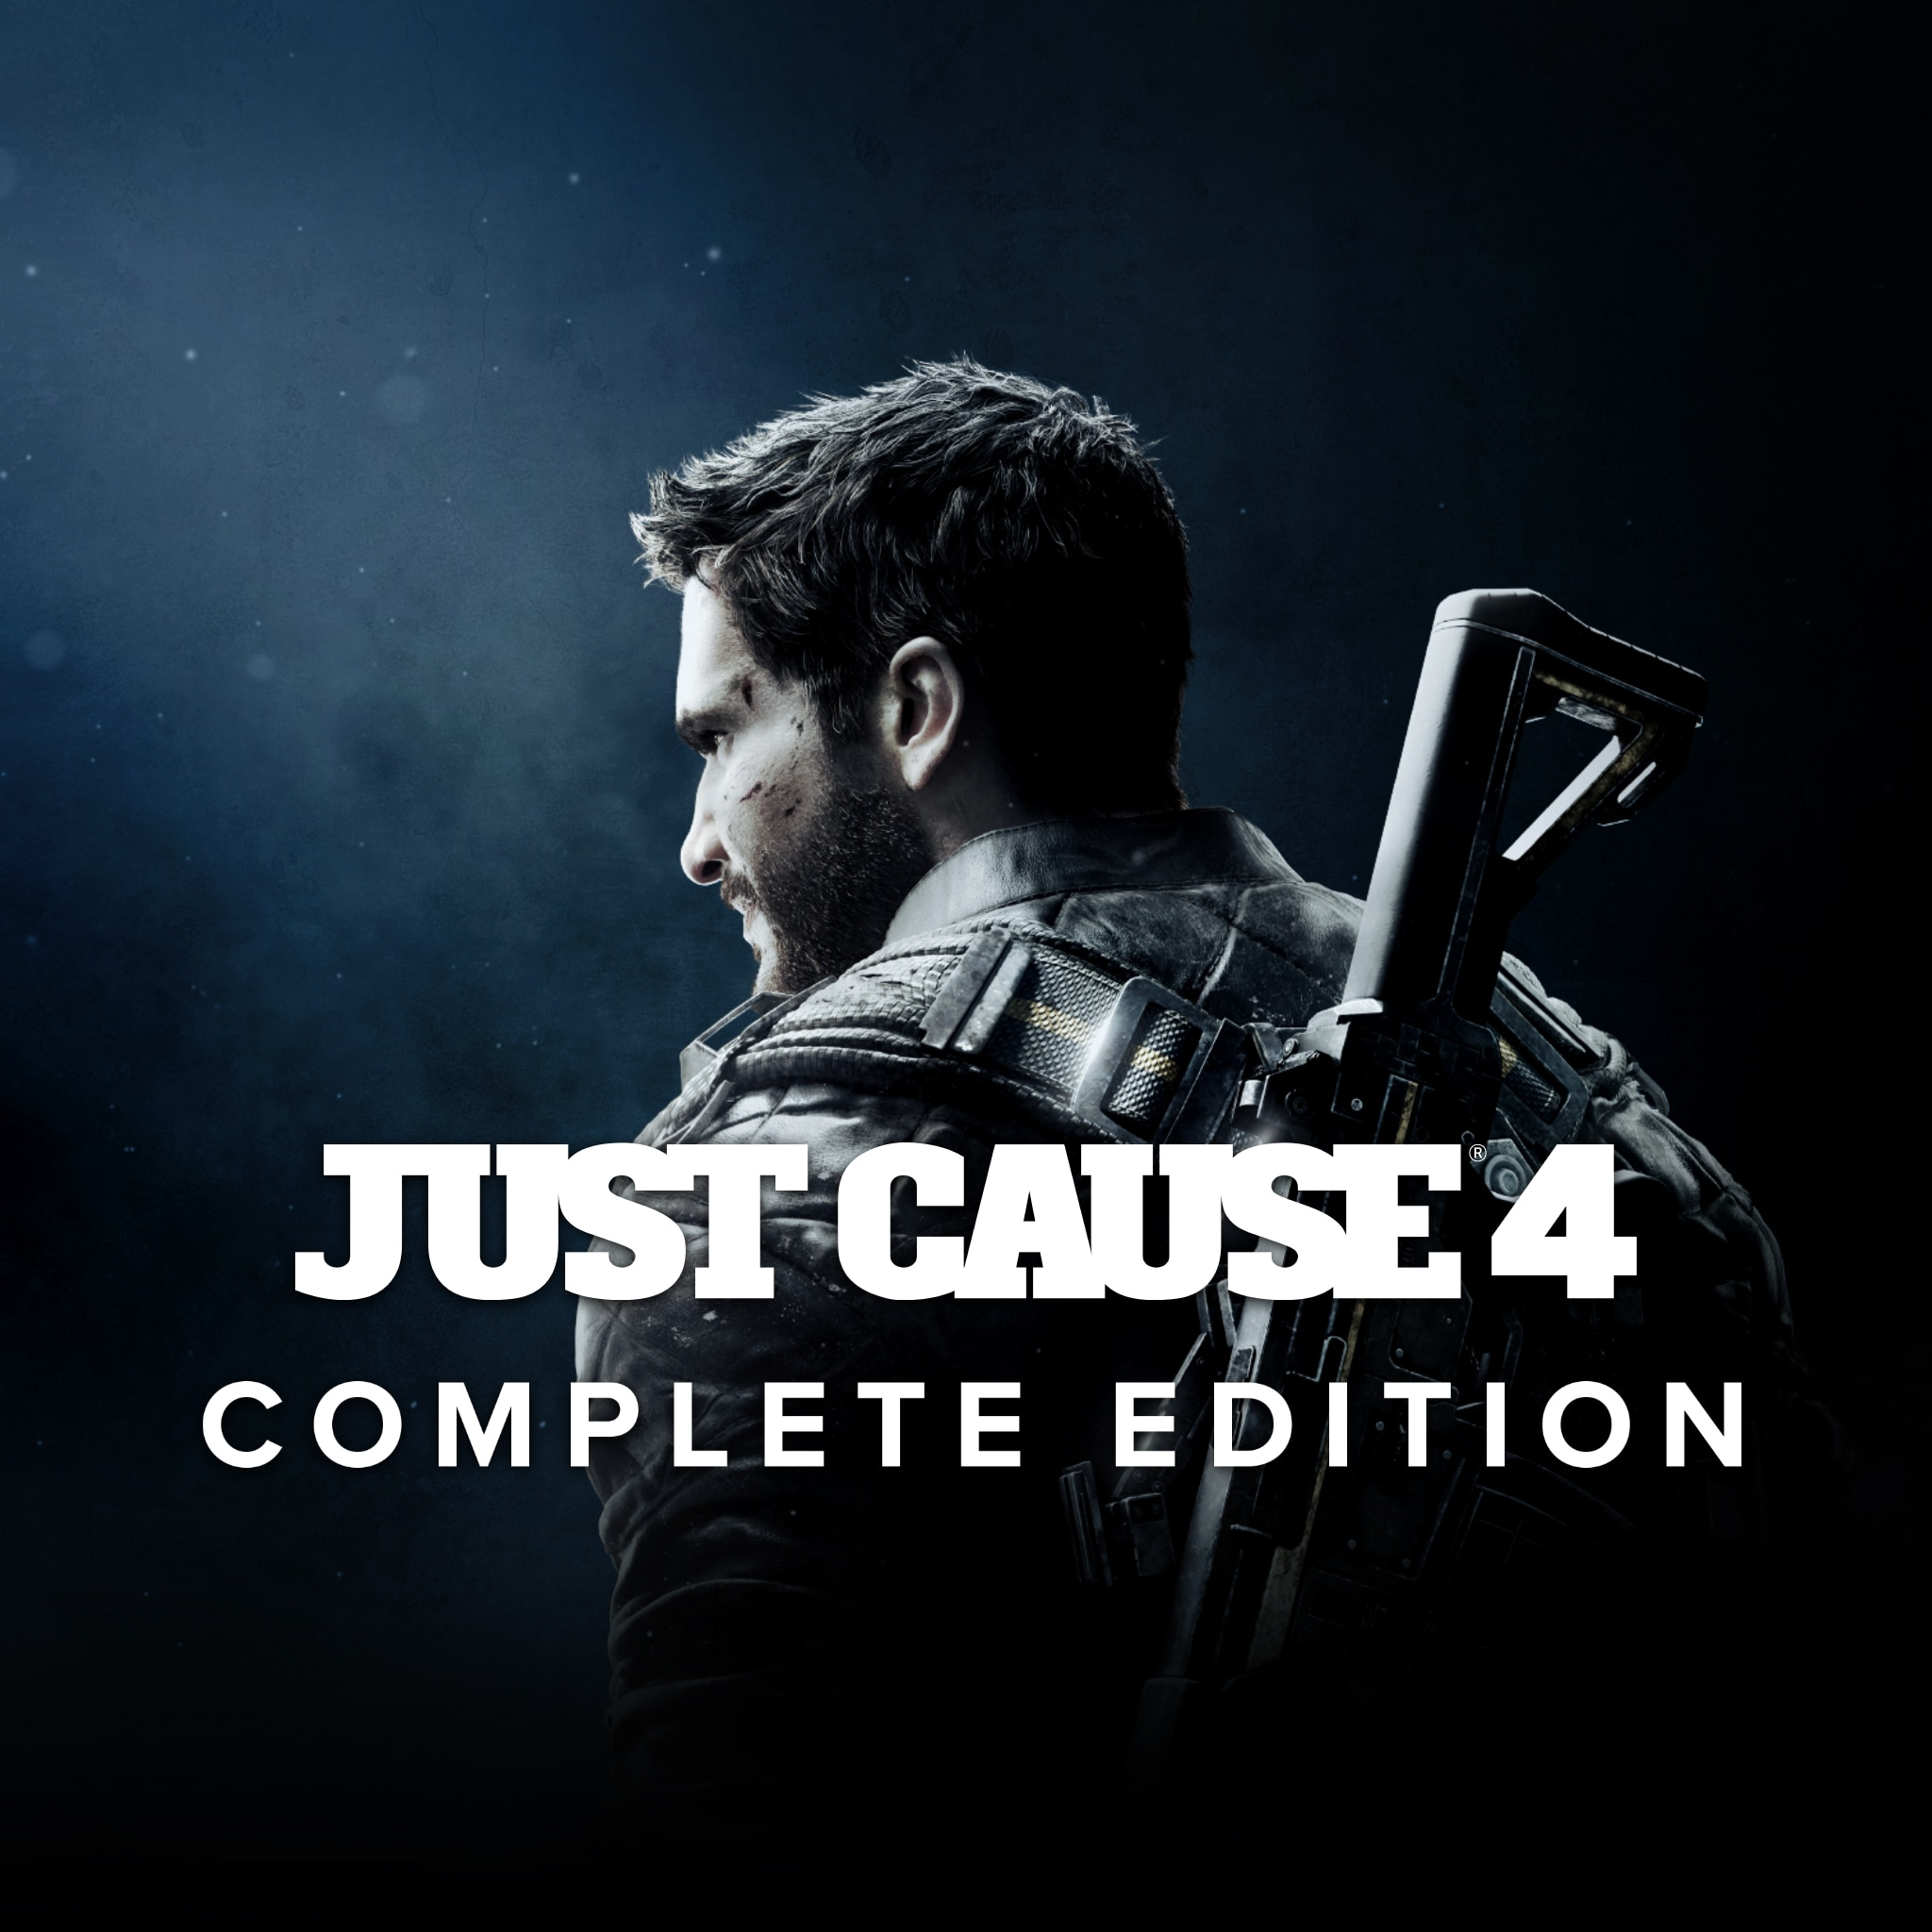 Just Cause 4 - Complete Edition